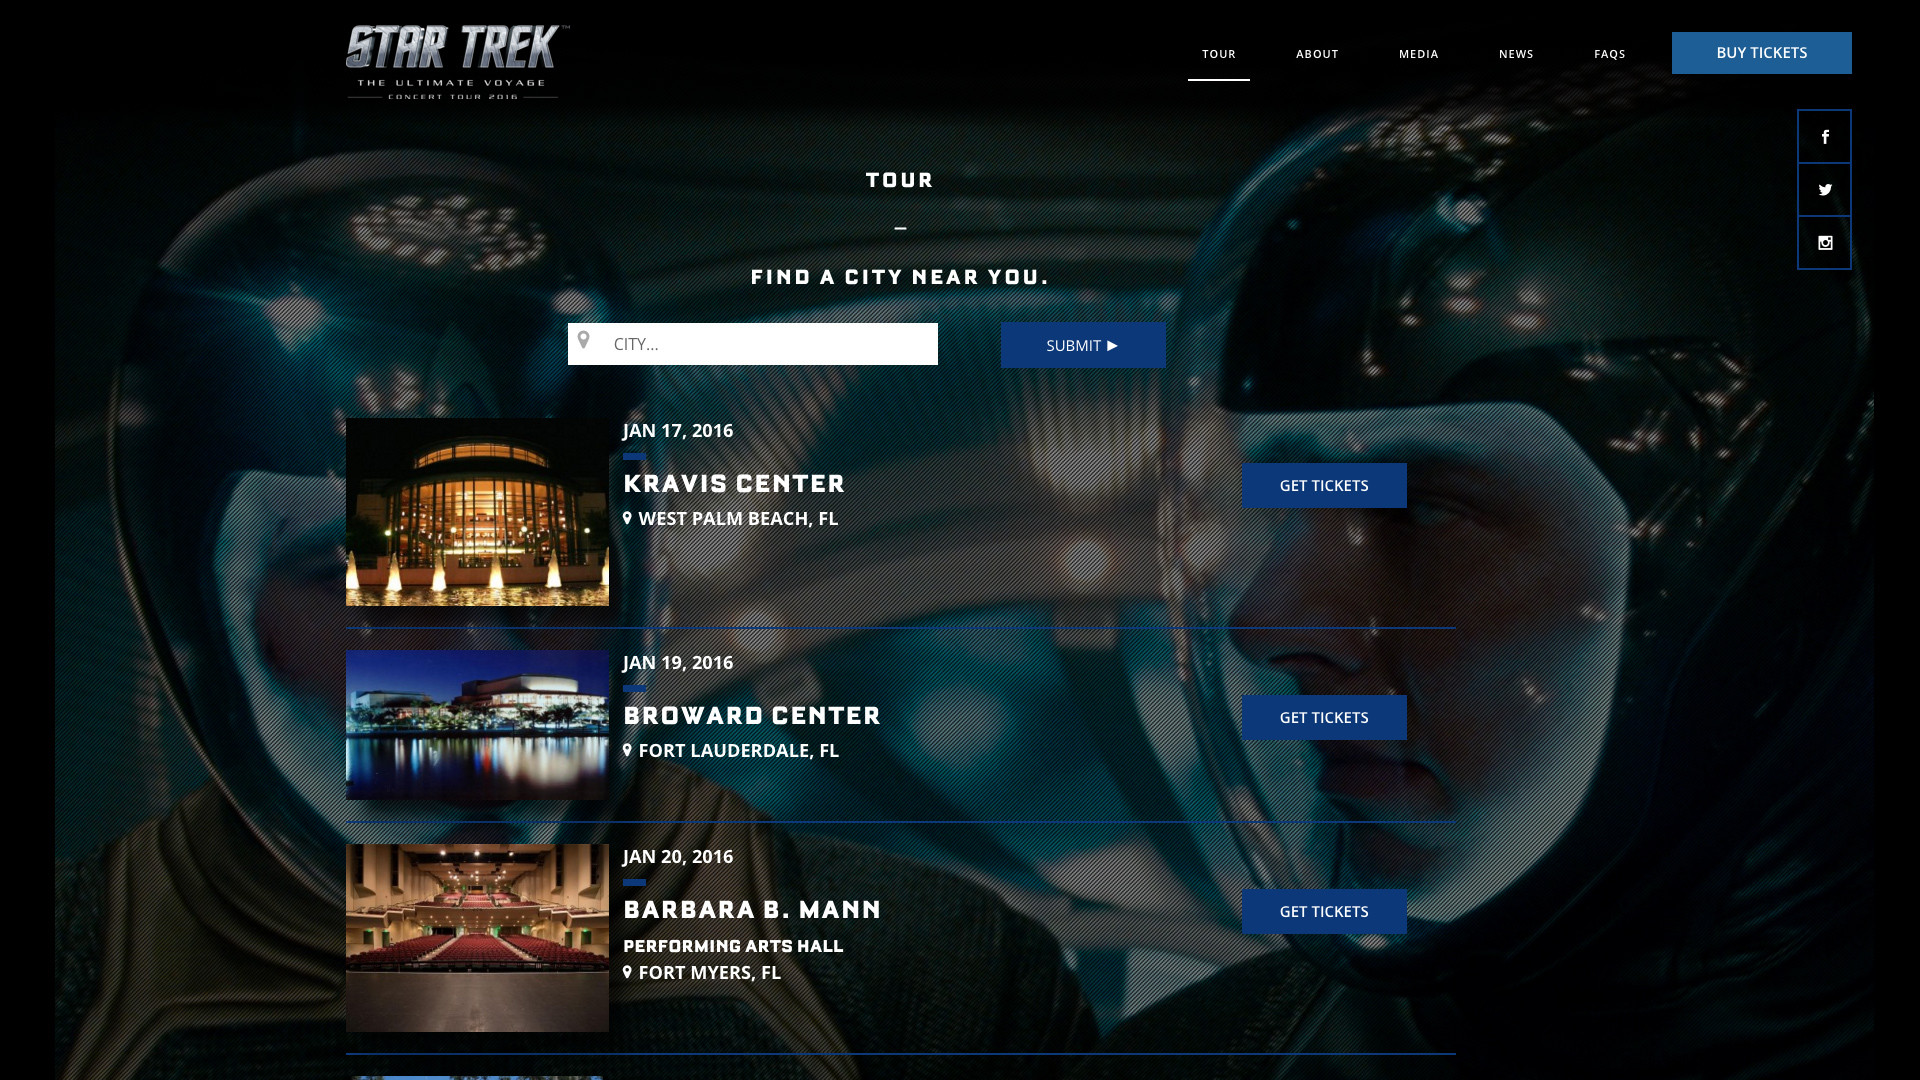 Star-Trek-Website-Project-Gallery-5-Tour